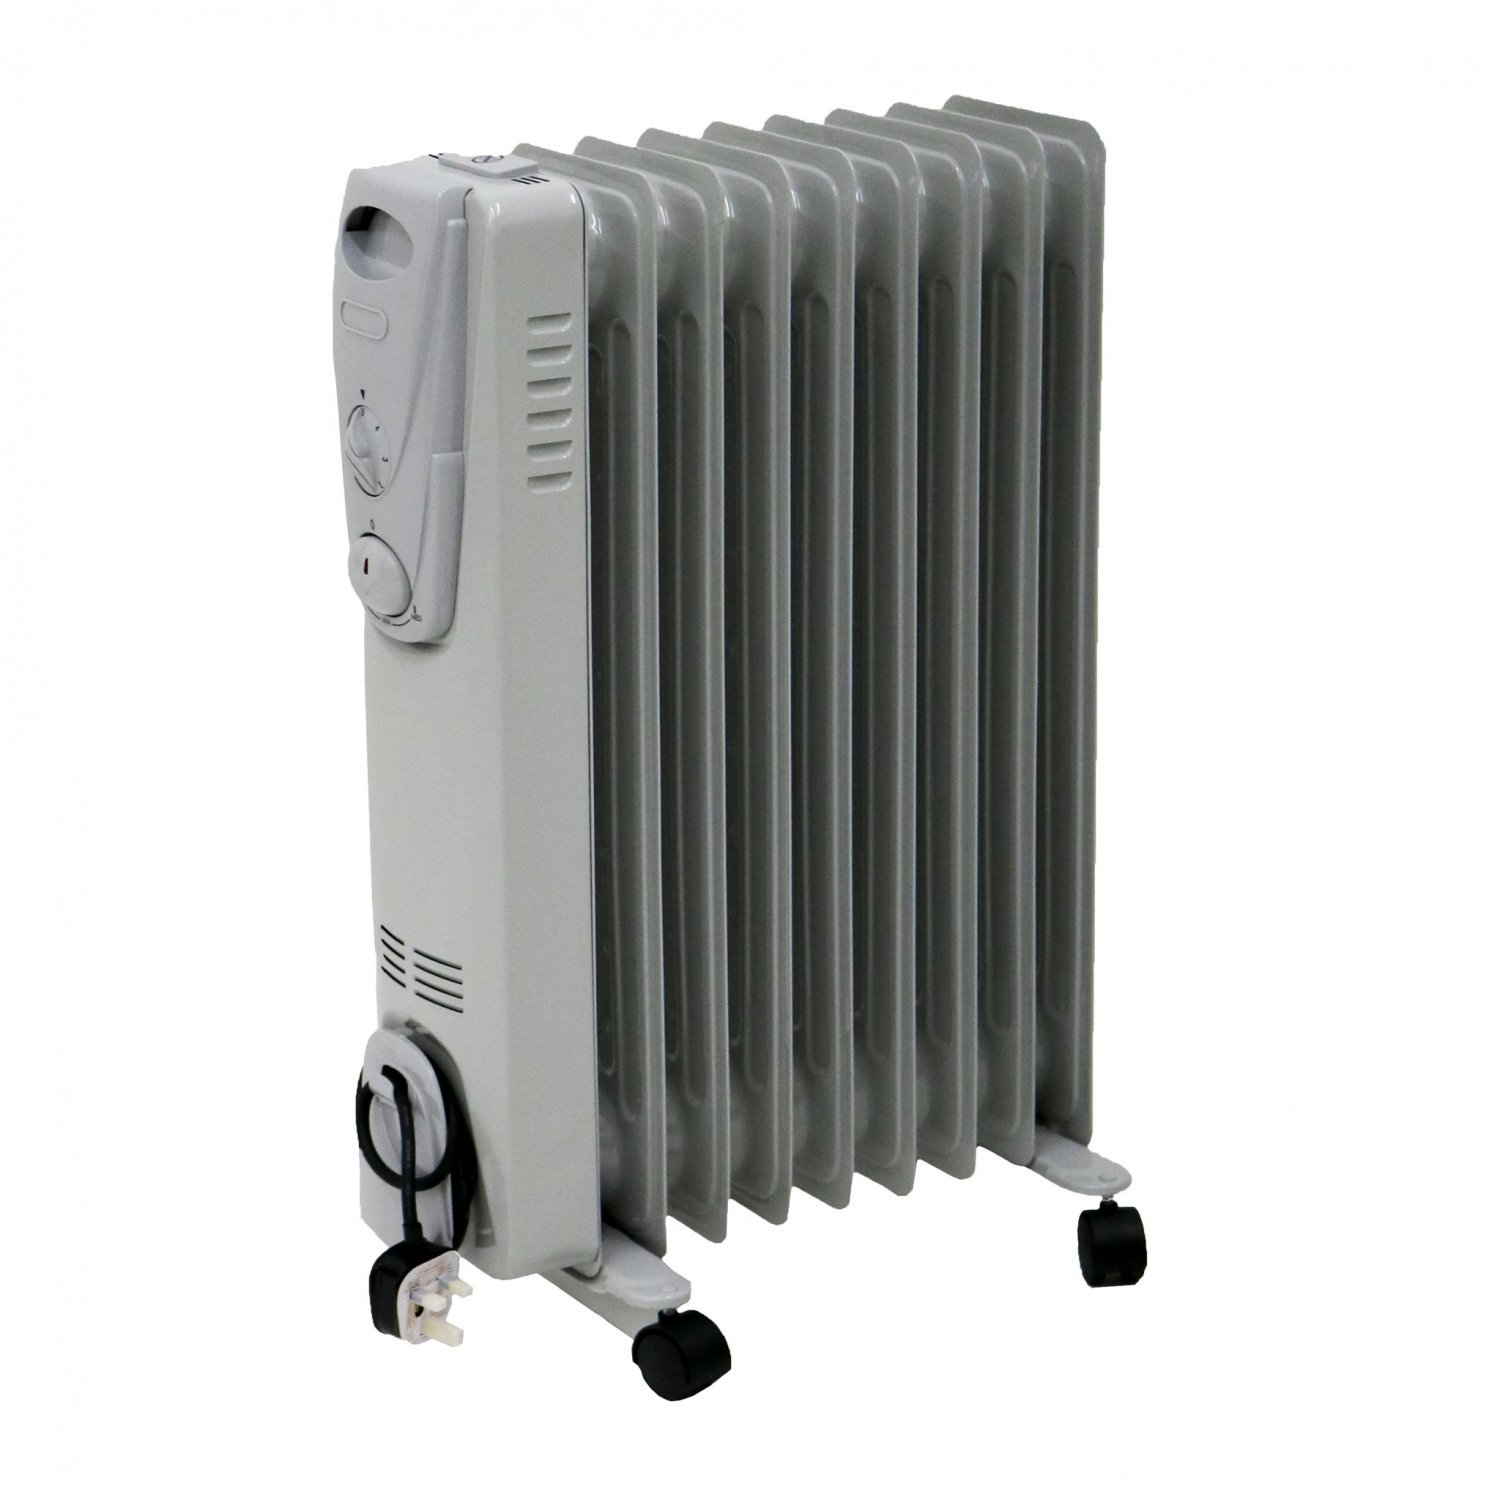 2000W 9 Fin Portable Oil Filled Radiator Electric Heater